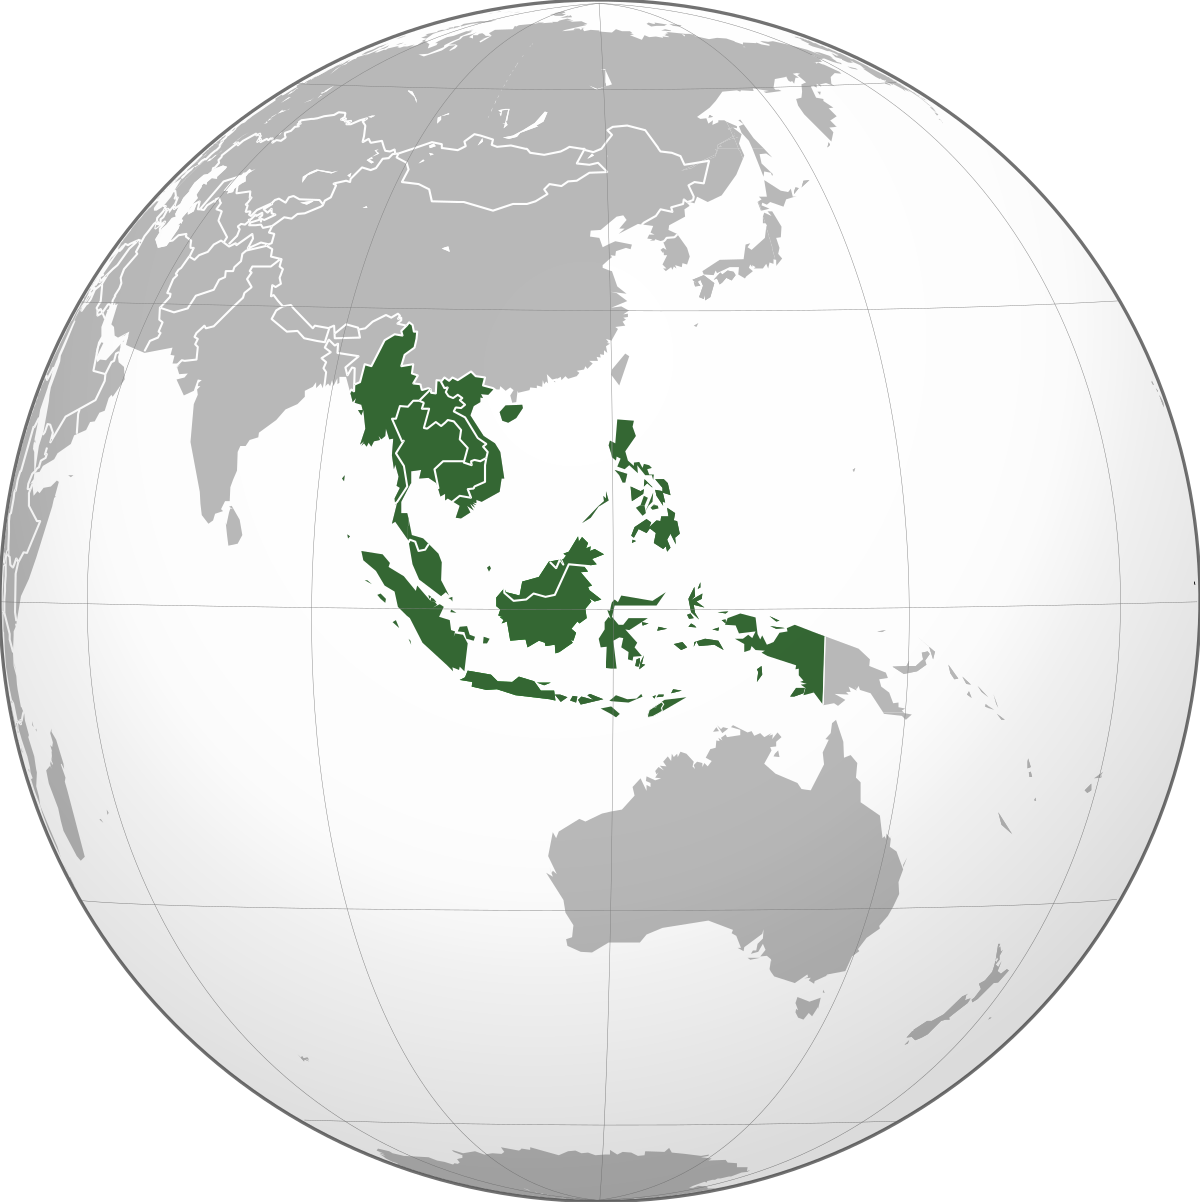 A picture of the map of Southeast Asia